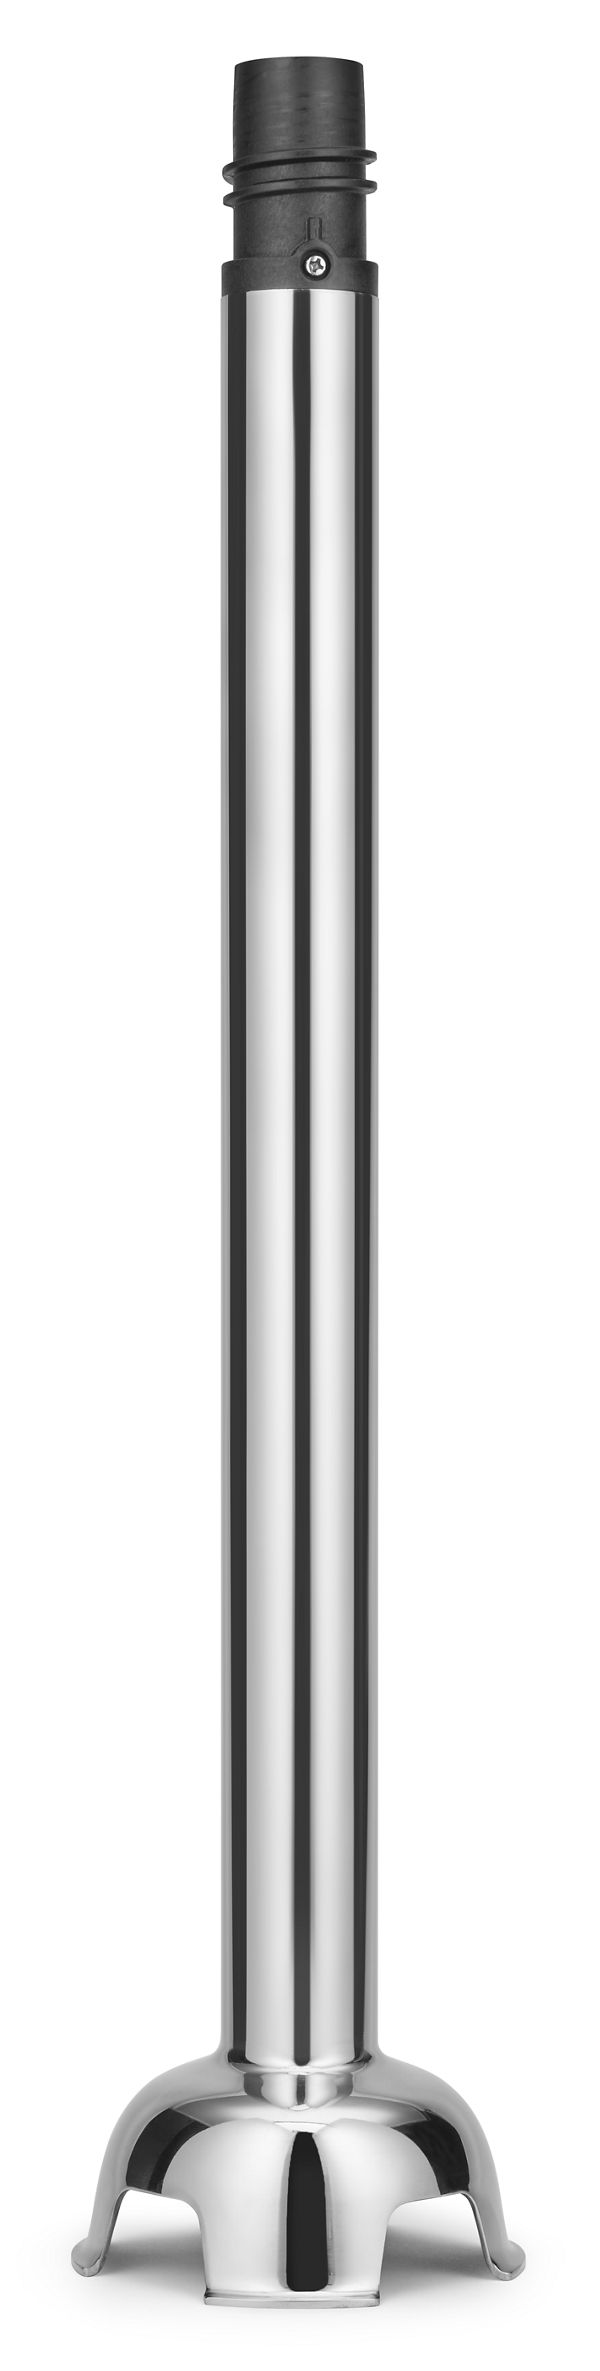 "20"" Blending Arm for Commercial® 400 Series Immersion Blender"